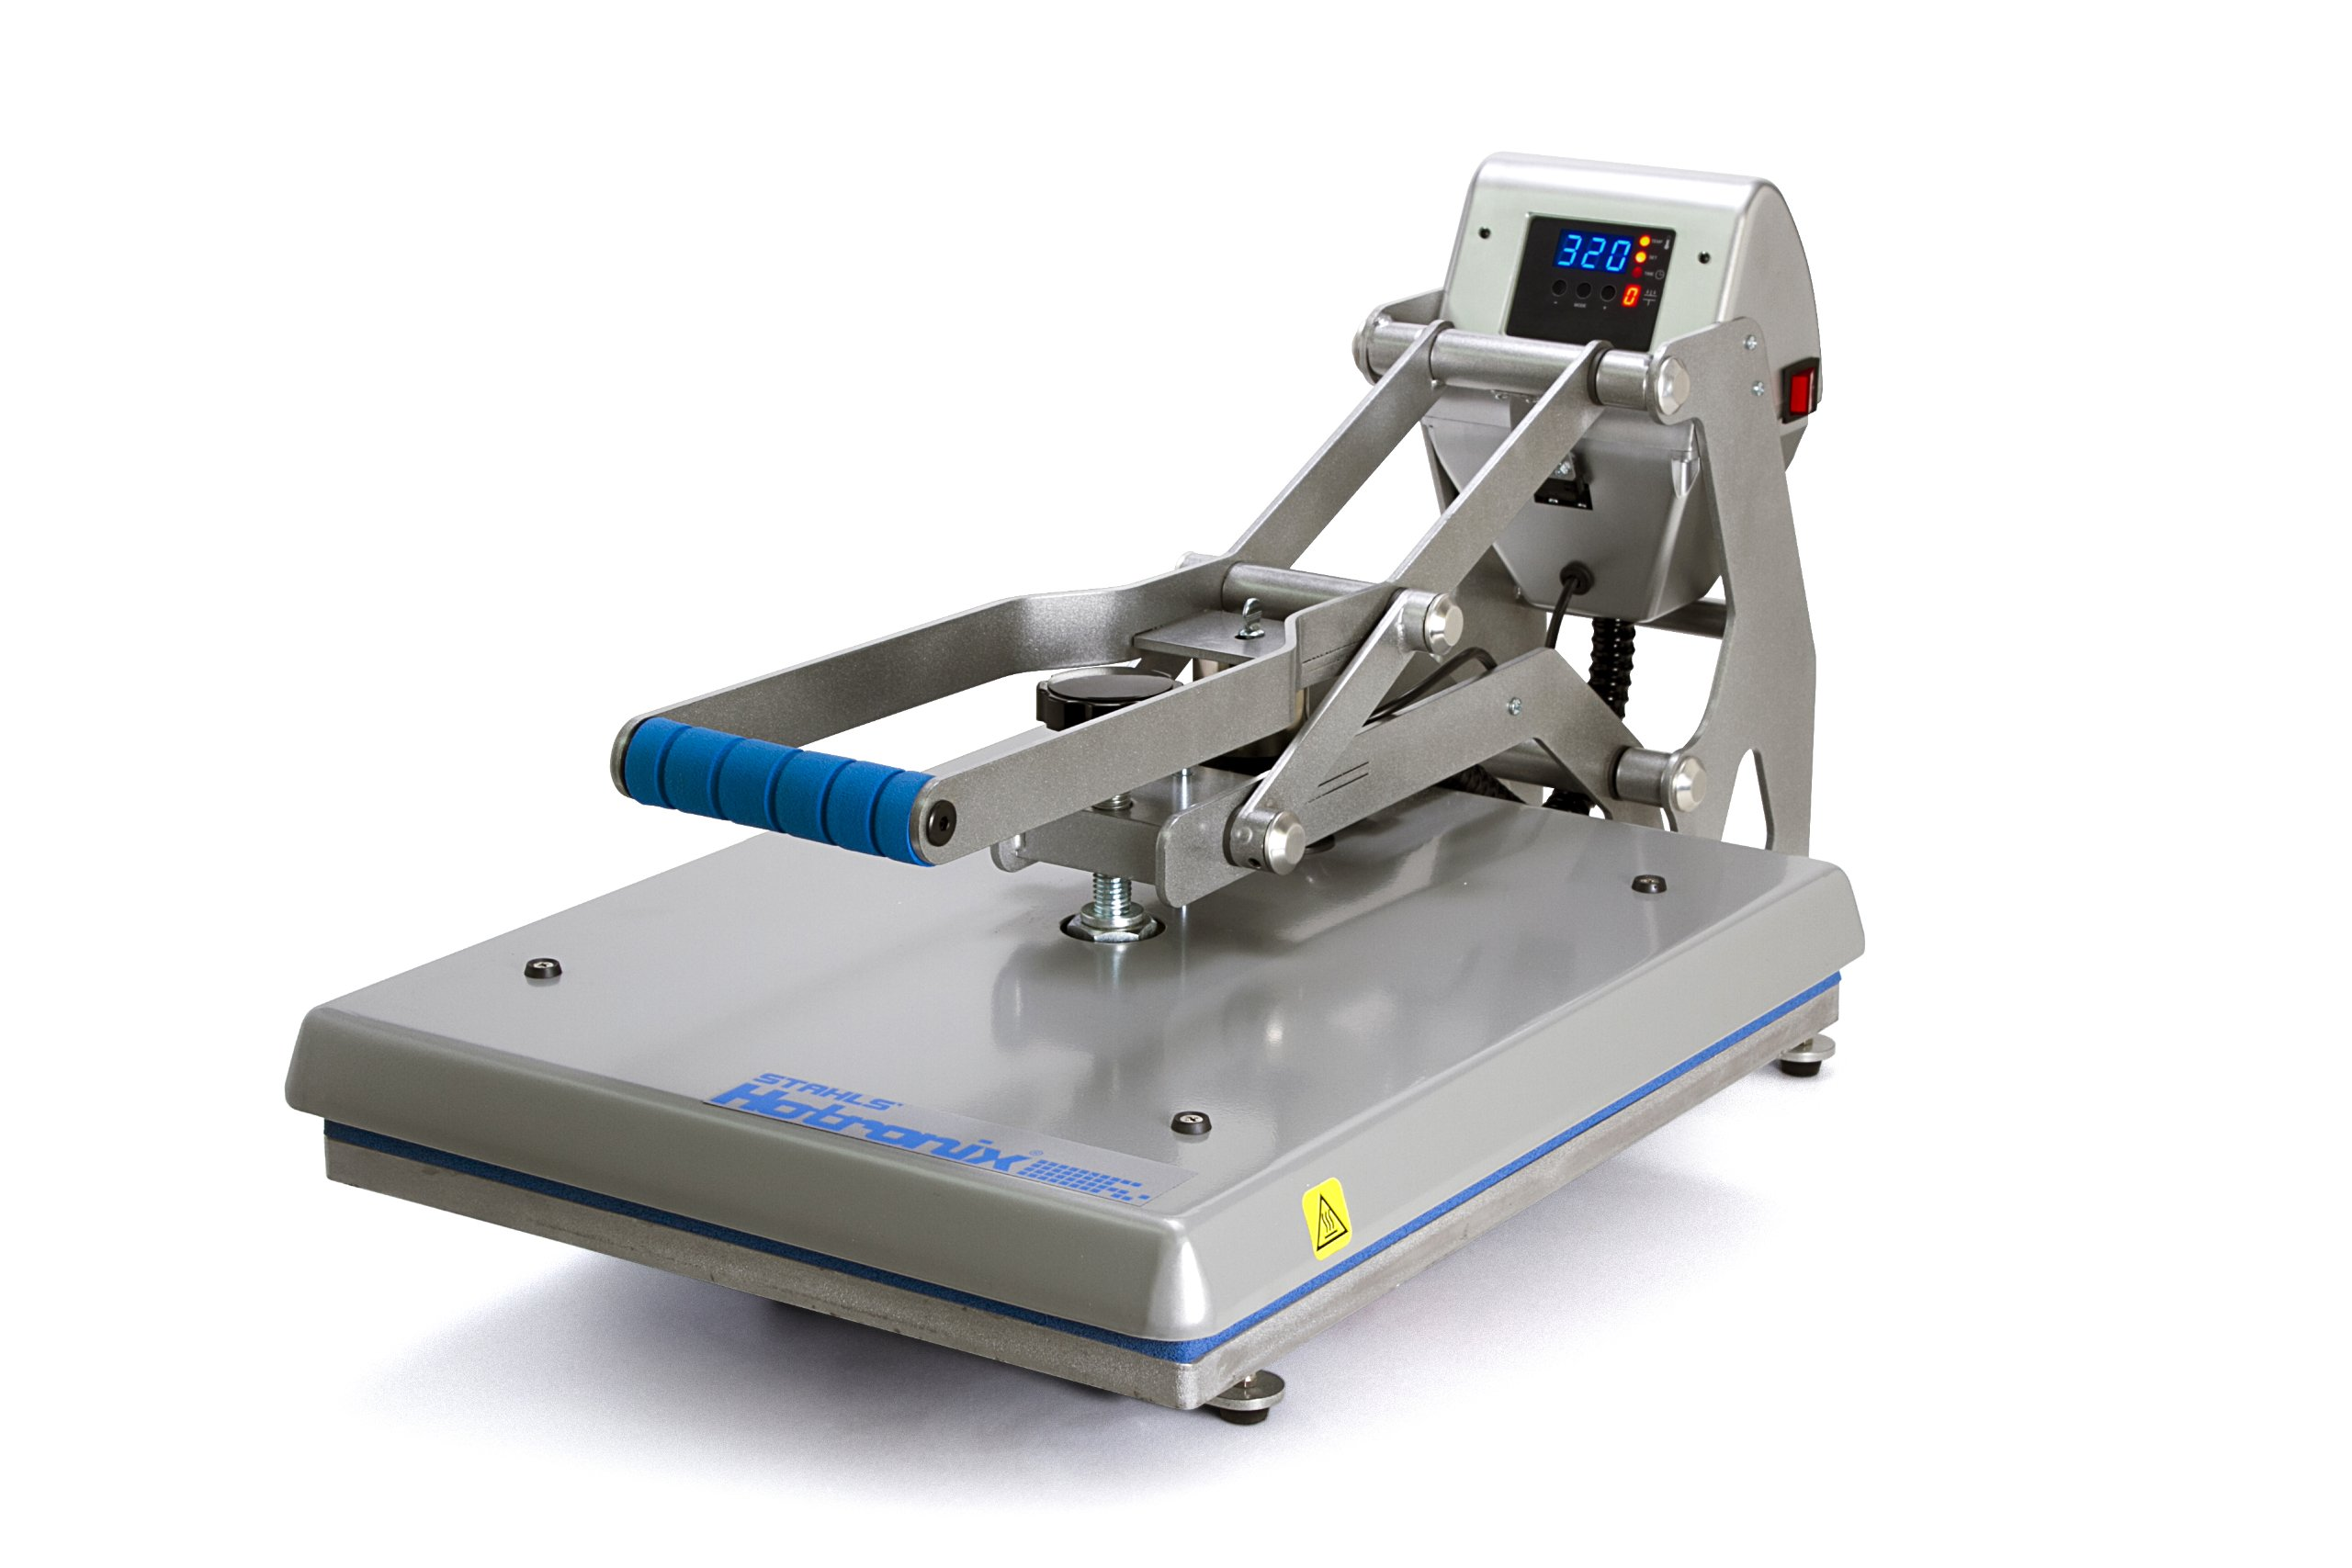 STAHLS HOTRONIX Auto-Open Clam 16x20 Heat Press by Hotronix